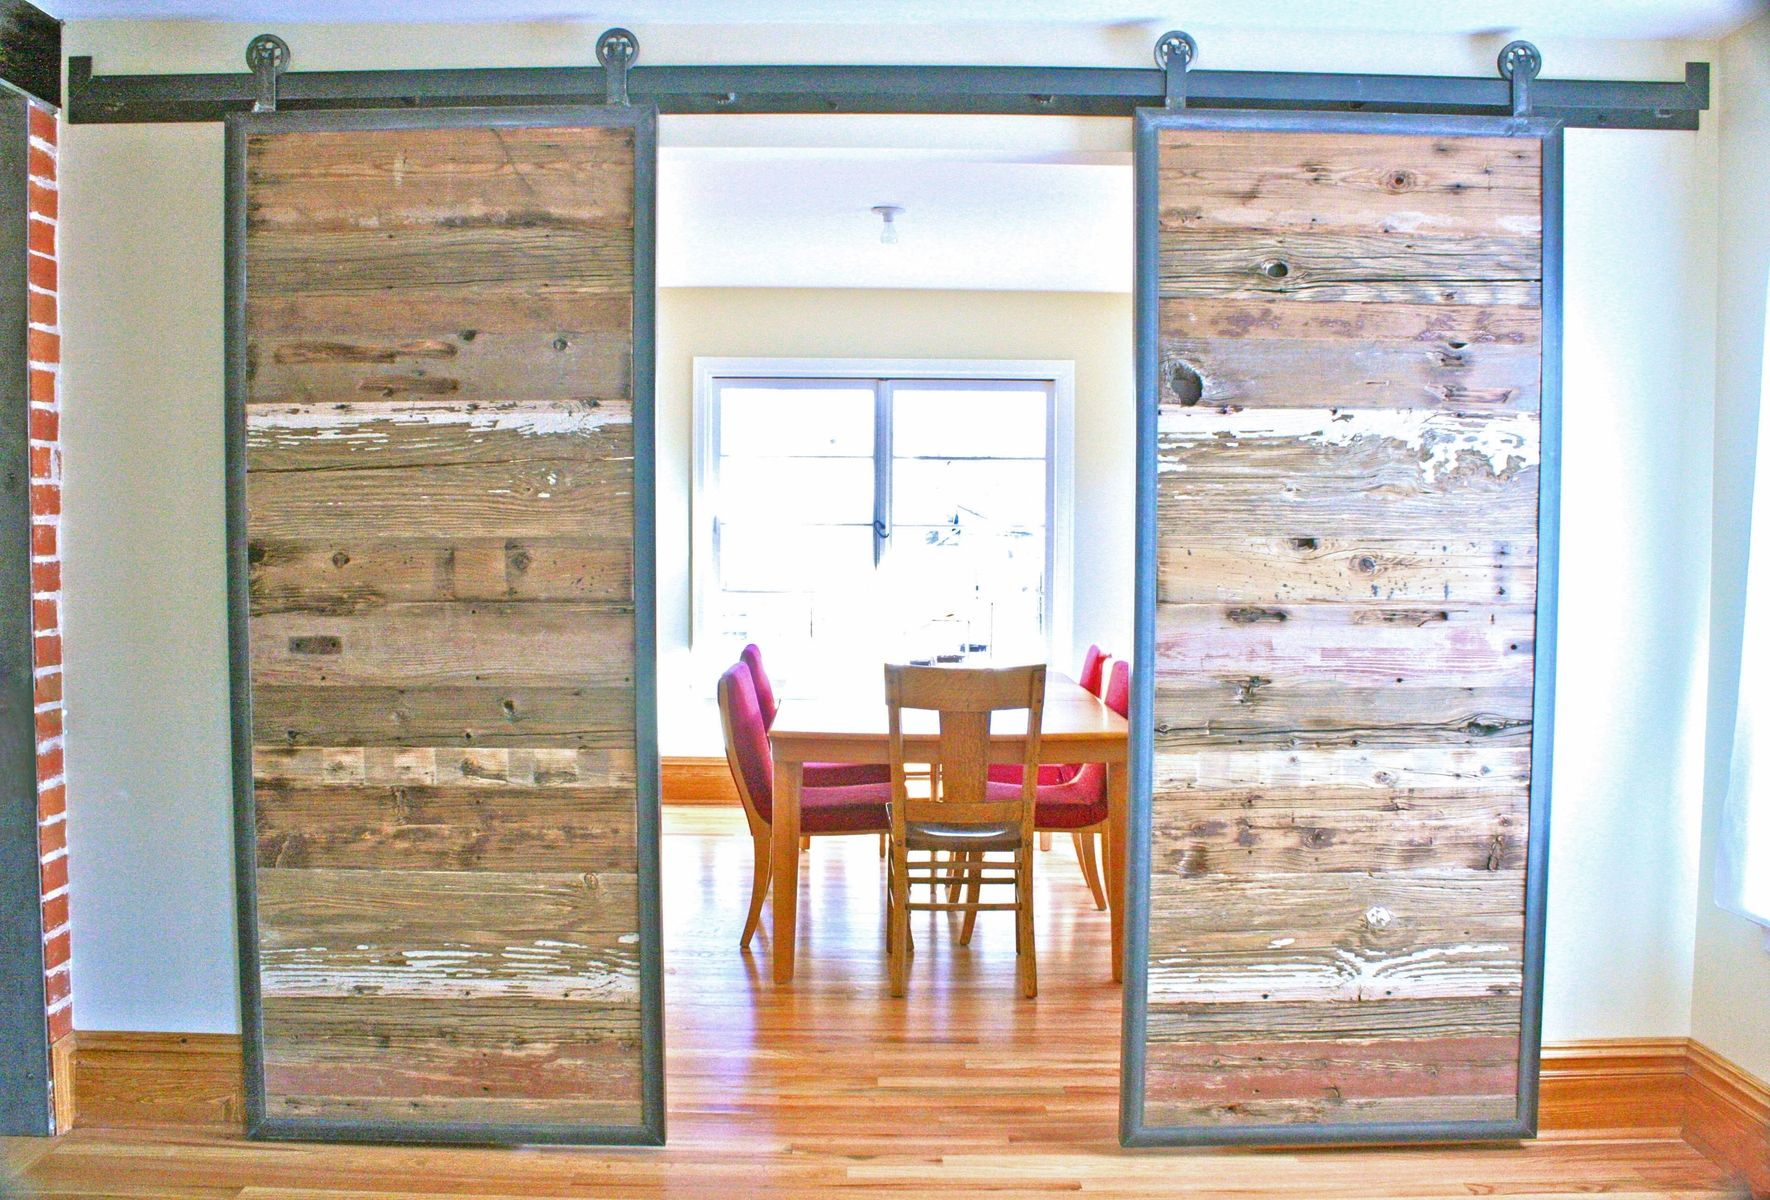 Handmade Industrial Reclaimed Barn Doors On Steel Track By Dancing